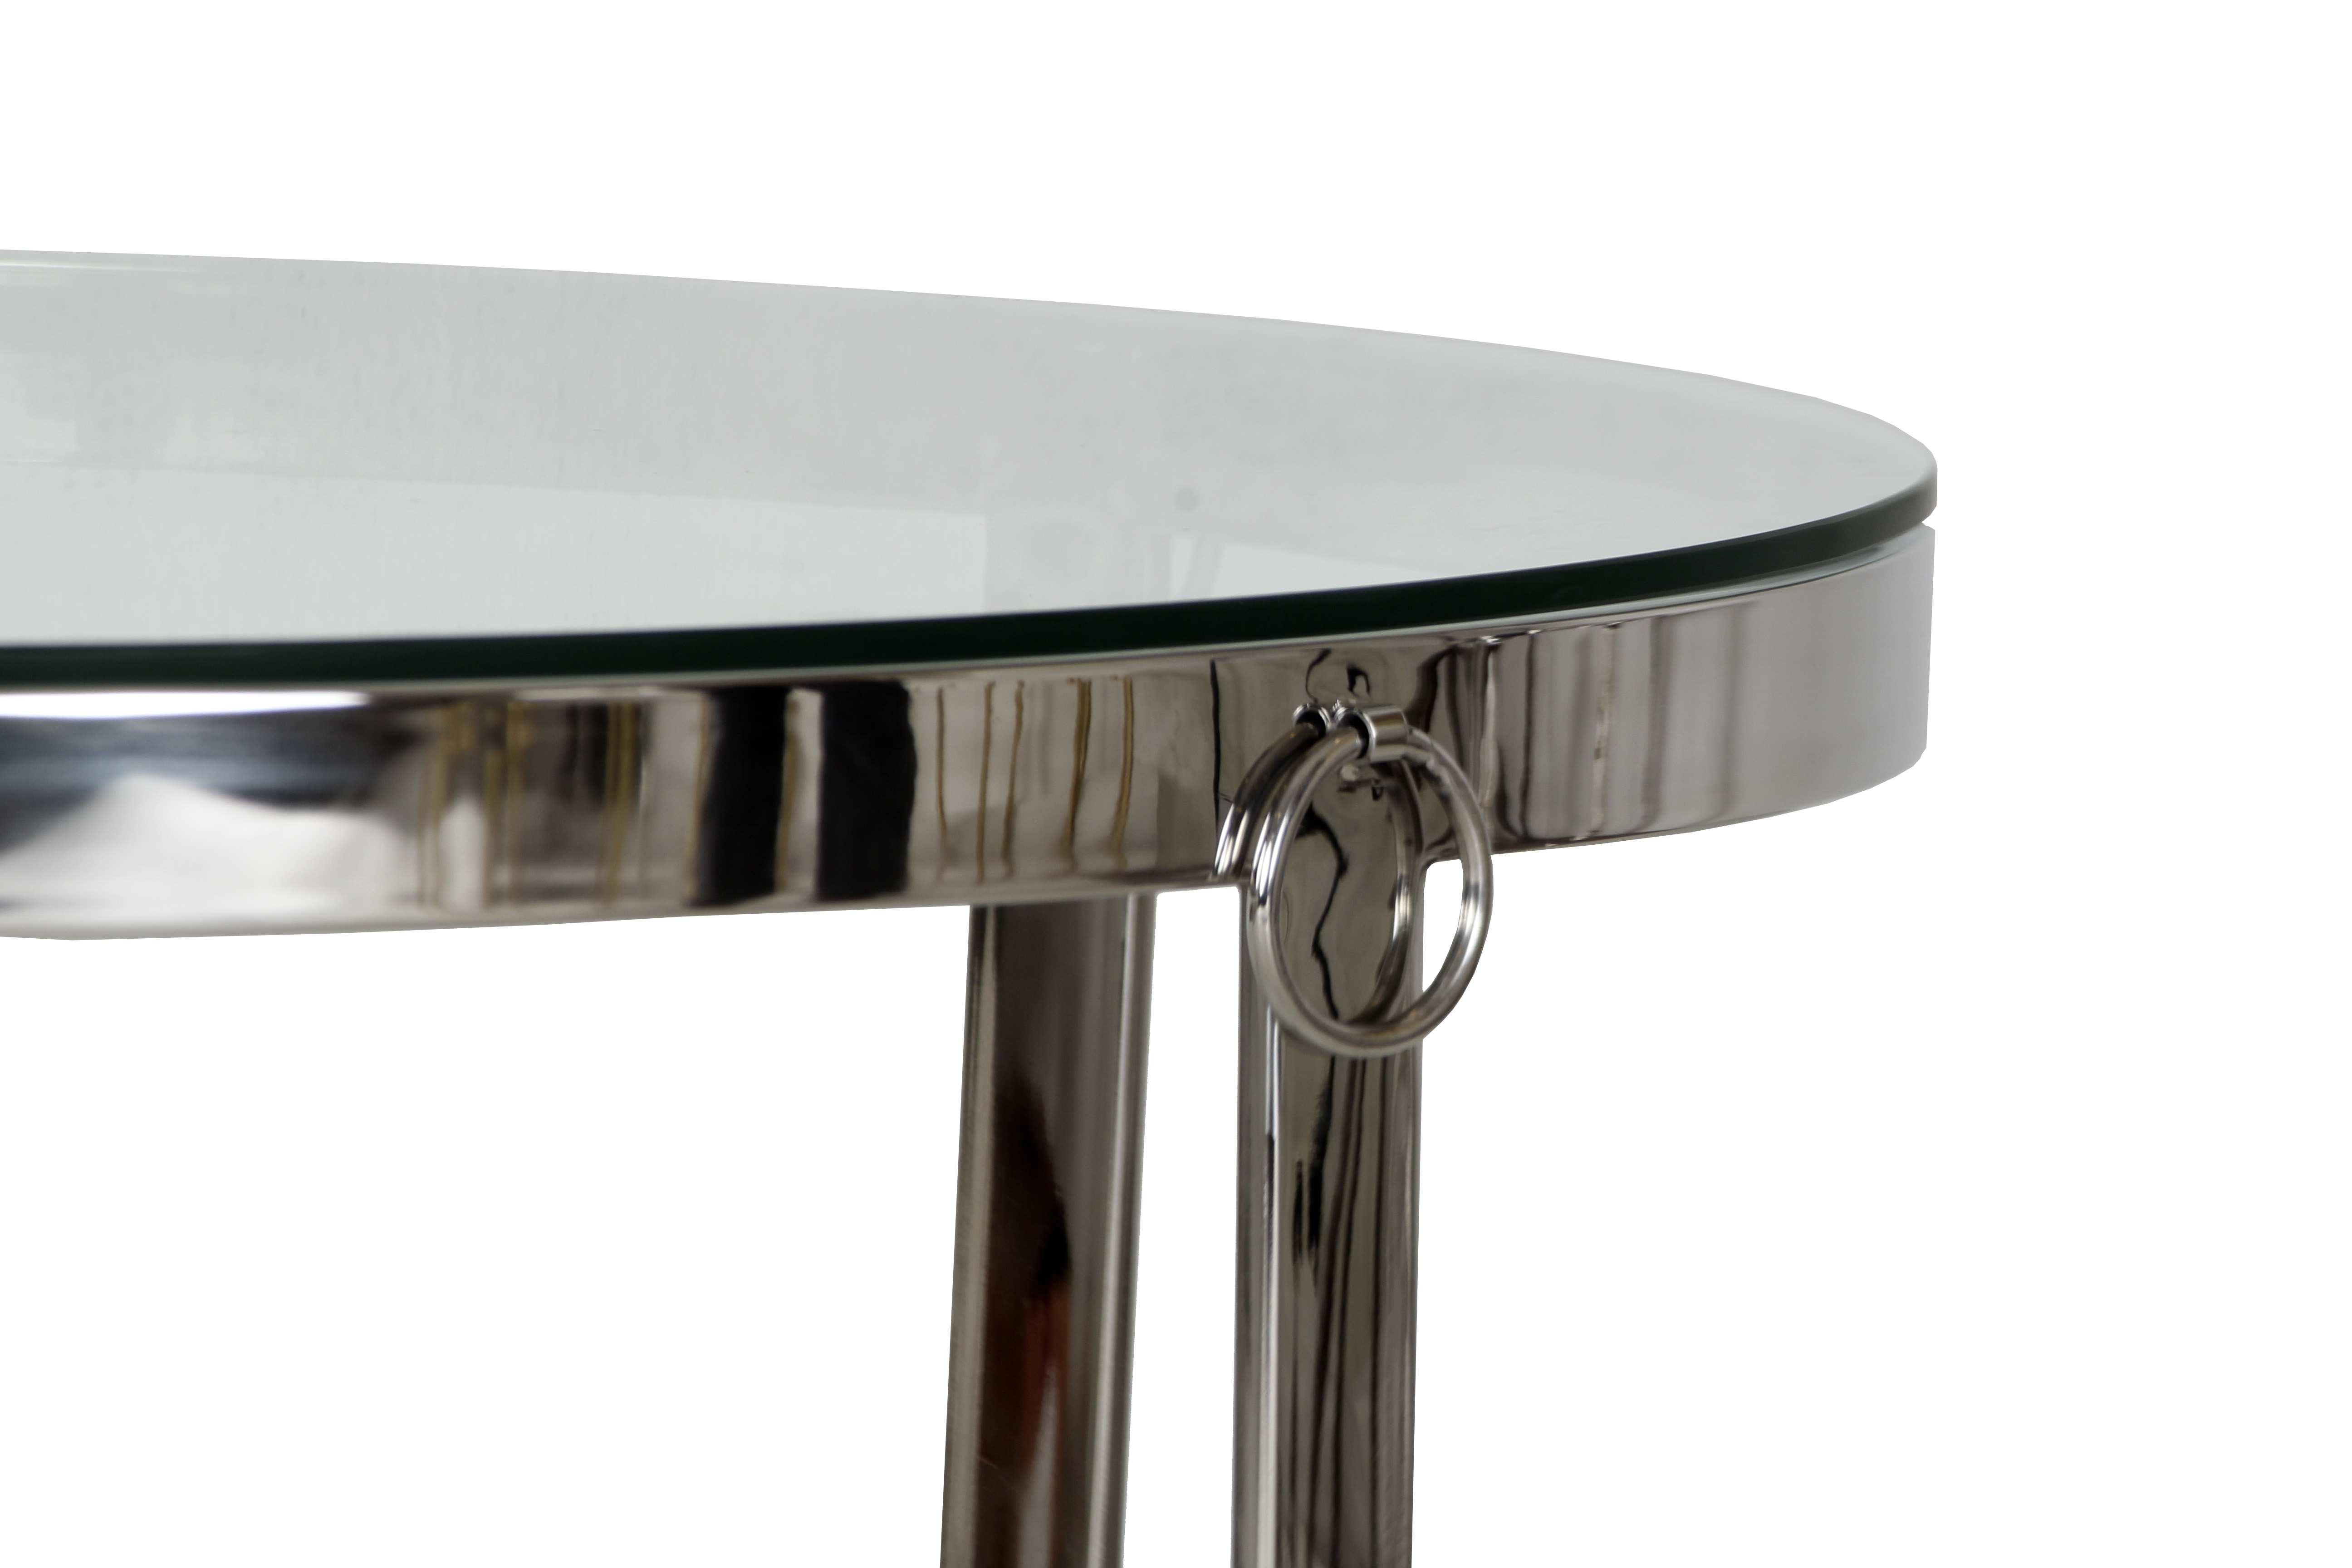 Aula Round Stainless Steel Chrome and Glass Coffee Table